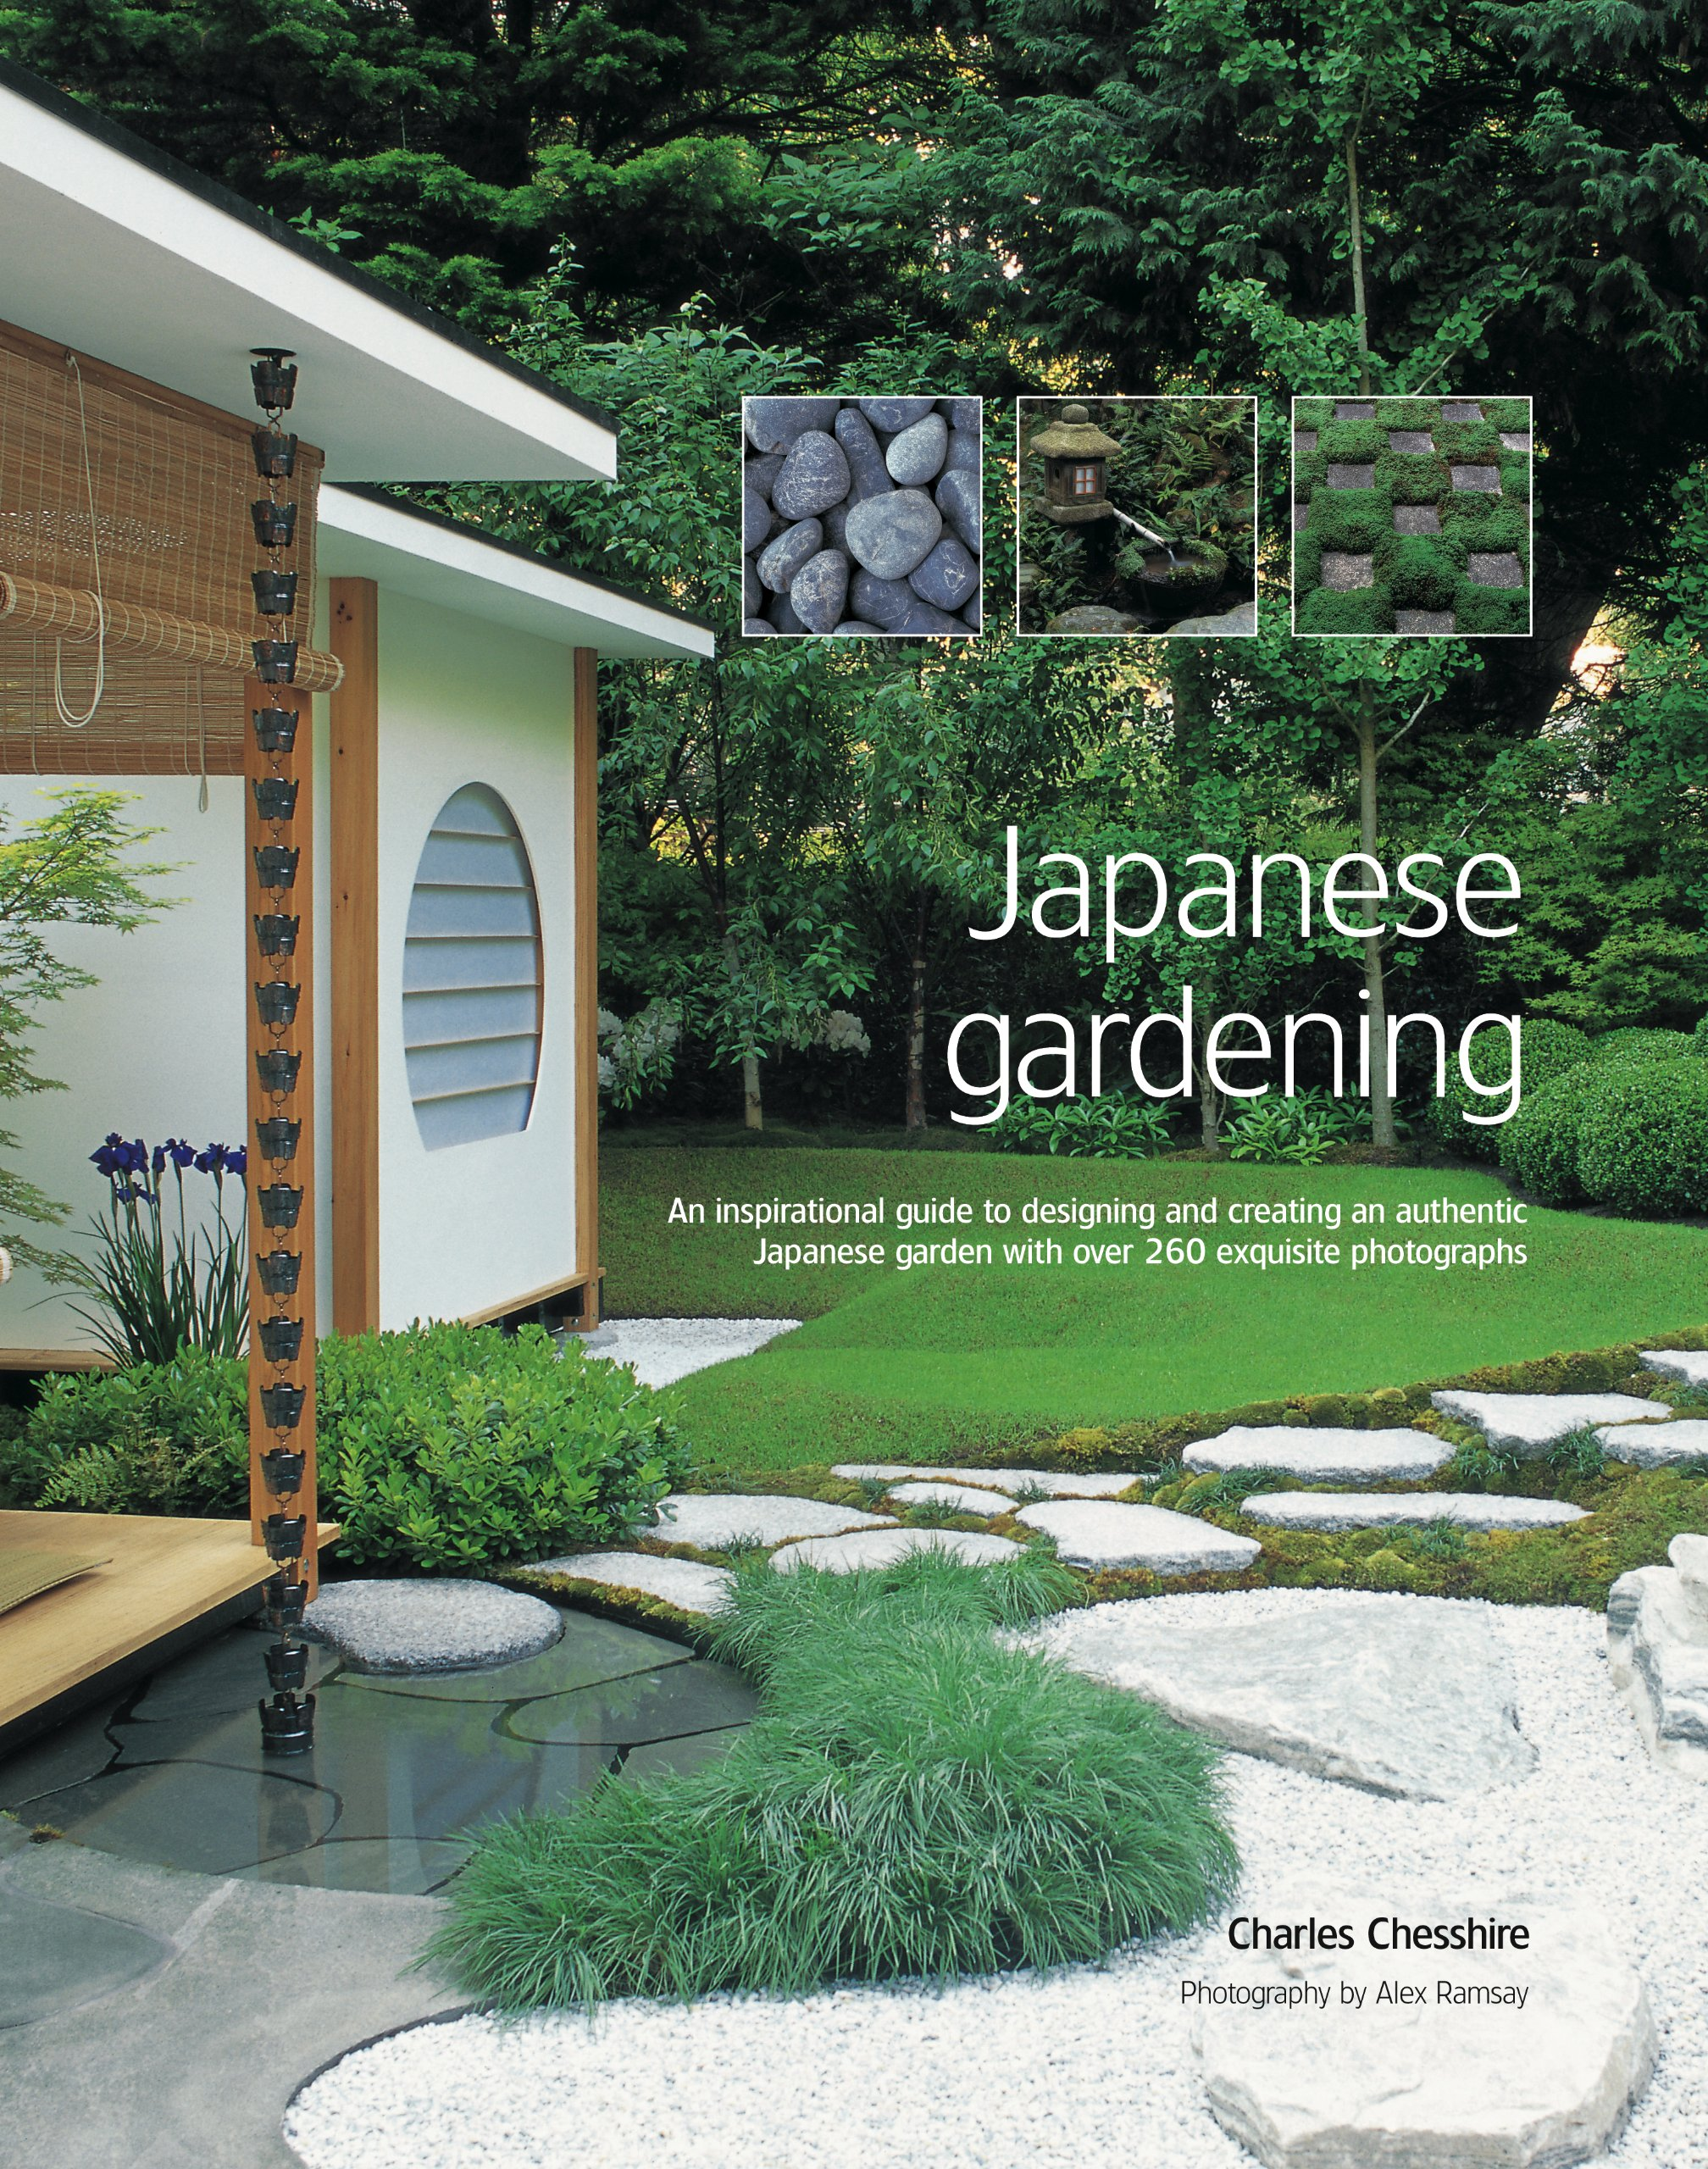 Wonderful Japanese Gardening: An Inspirational Guide To Designing And Creating An  Authentic Japanese Garden With Over 300 Colour Photographs: Amazon.co.uk:  Charles ...